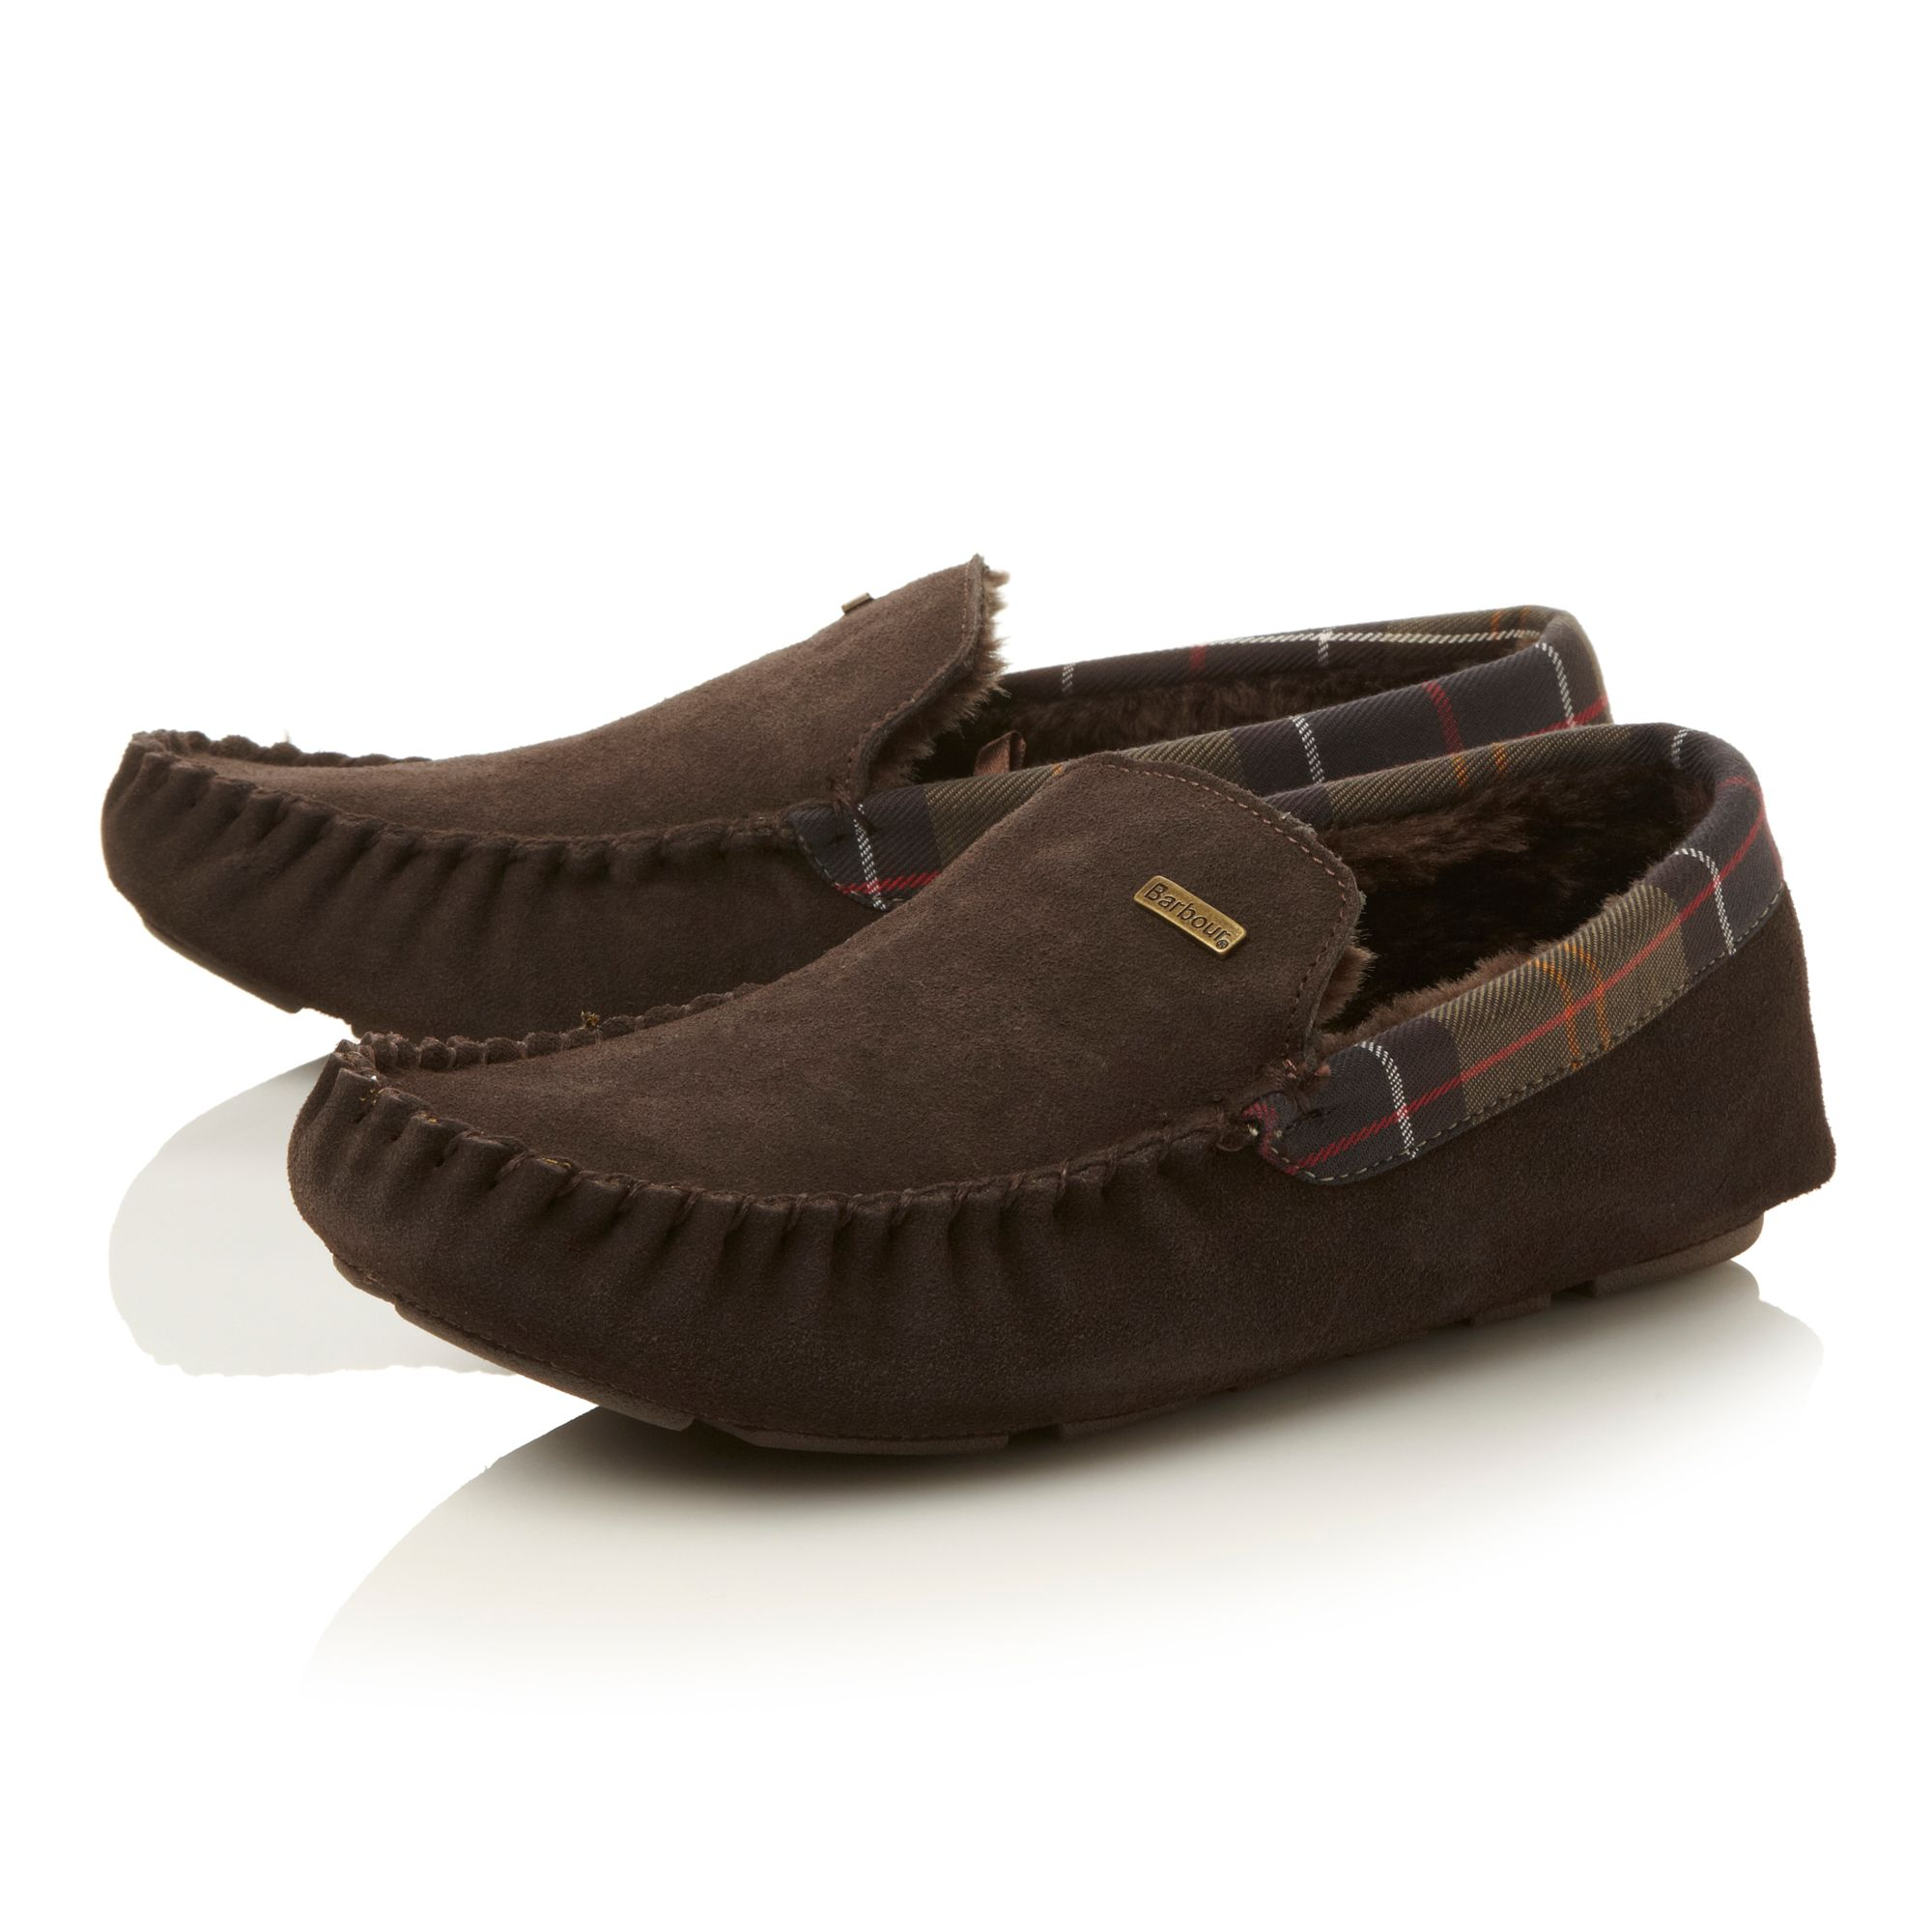 Monty moccasin slippers